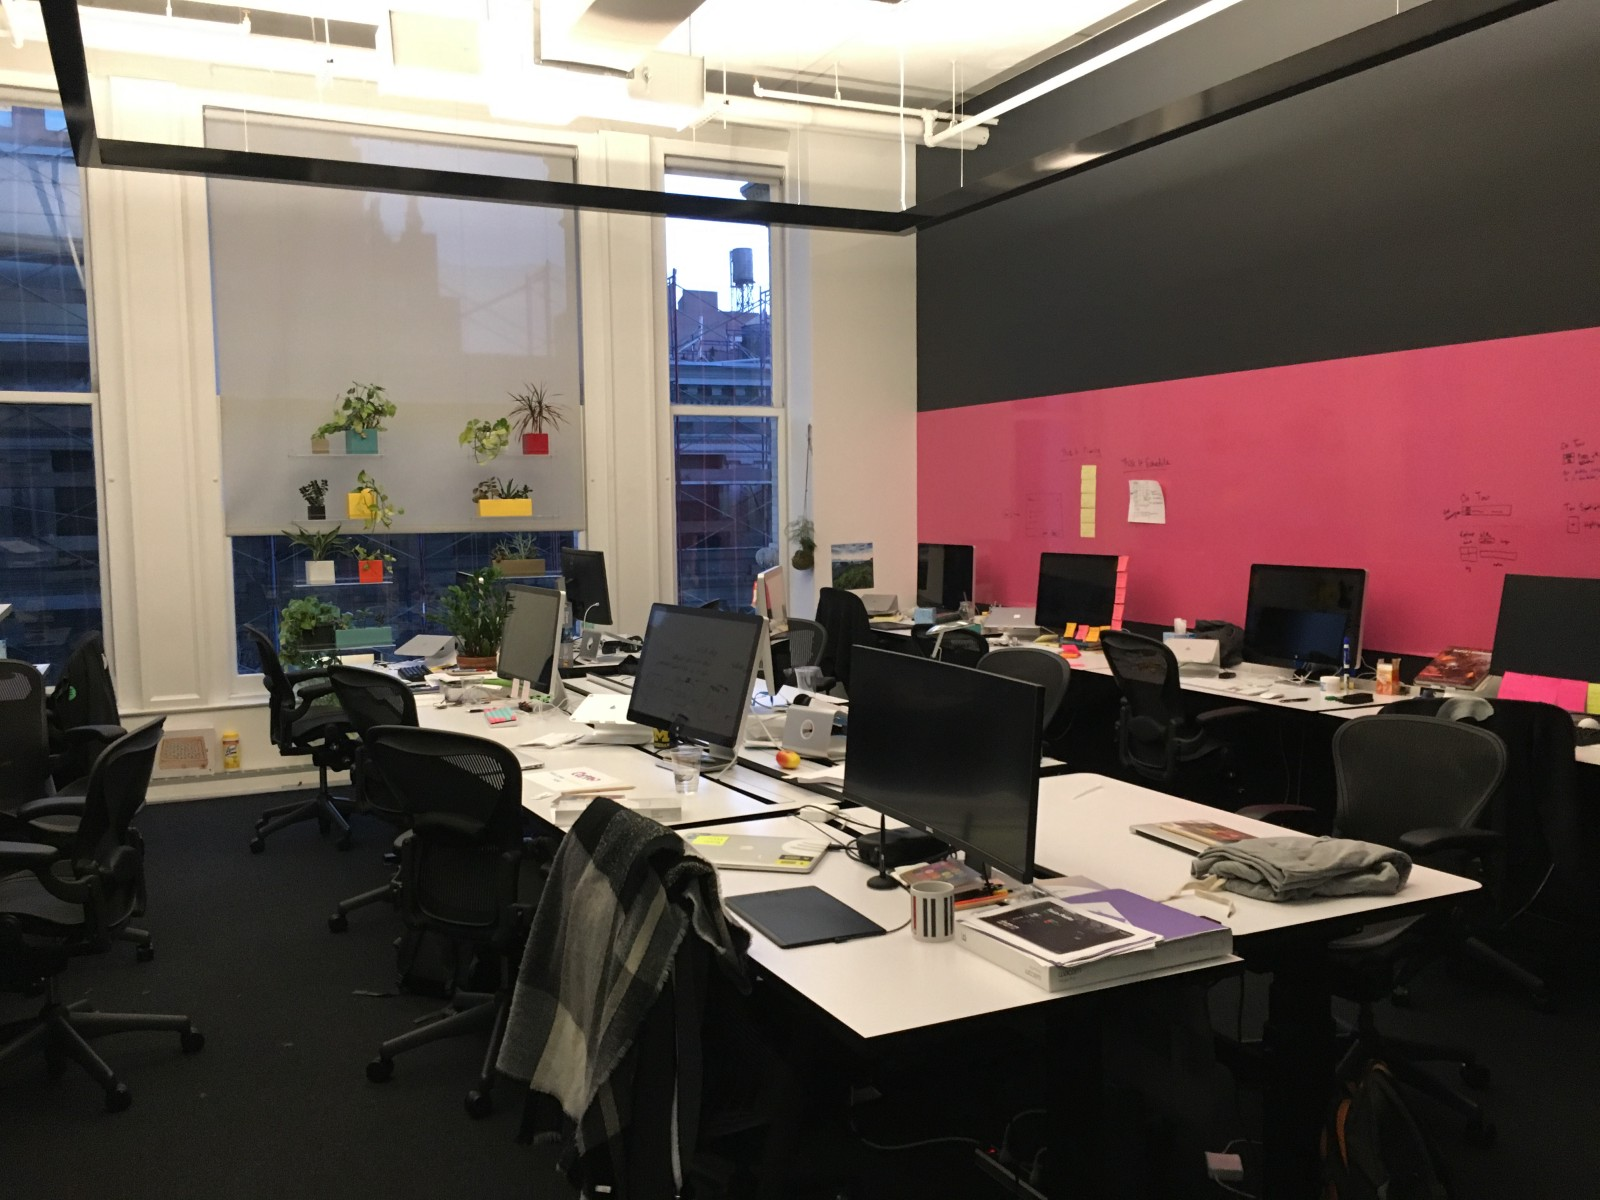 spotify york office spotify. in general spotify runs an agile method within squads which is terminology for teams this meant that we ran 2week long sprints to iteratively